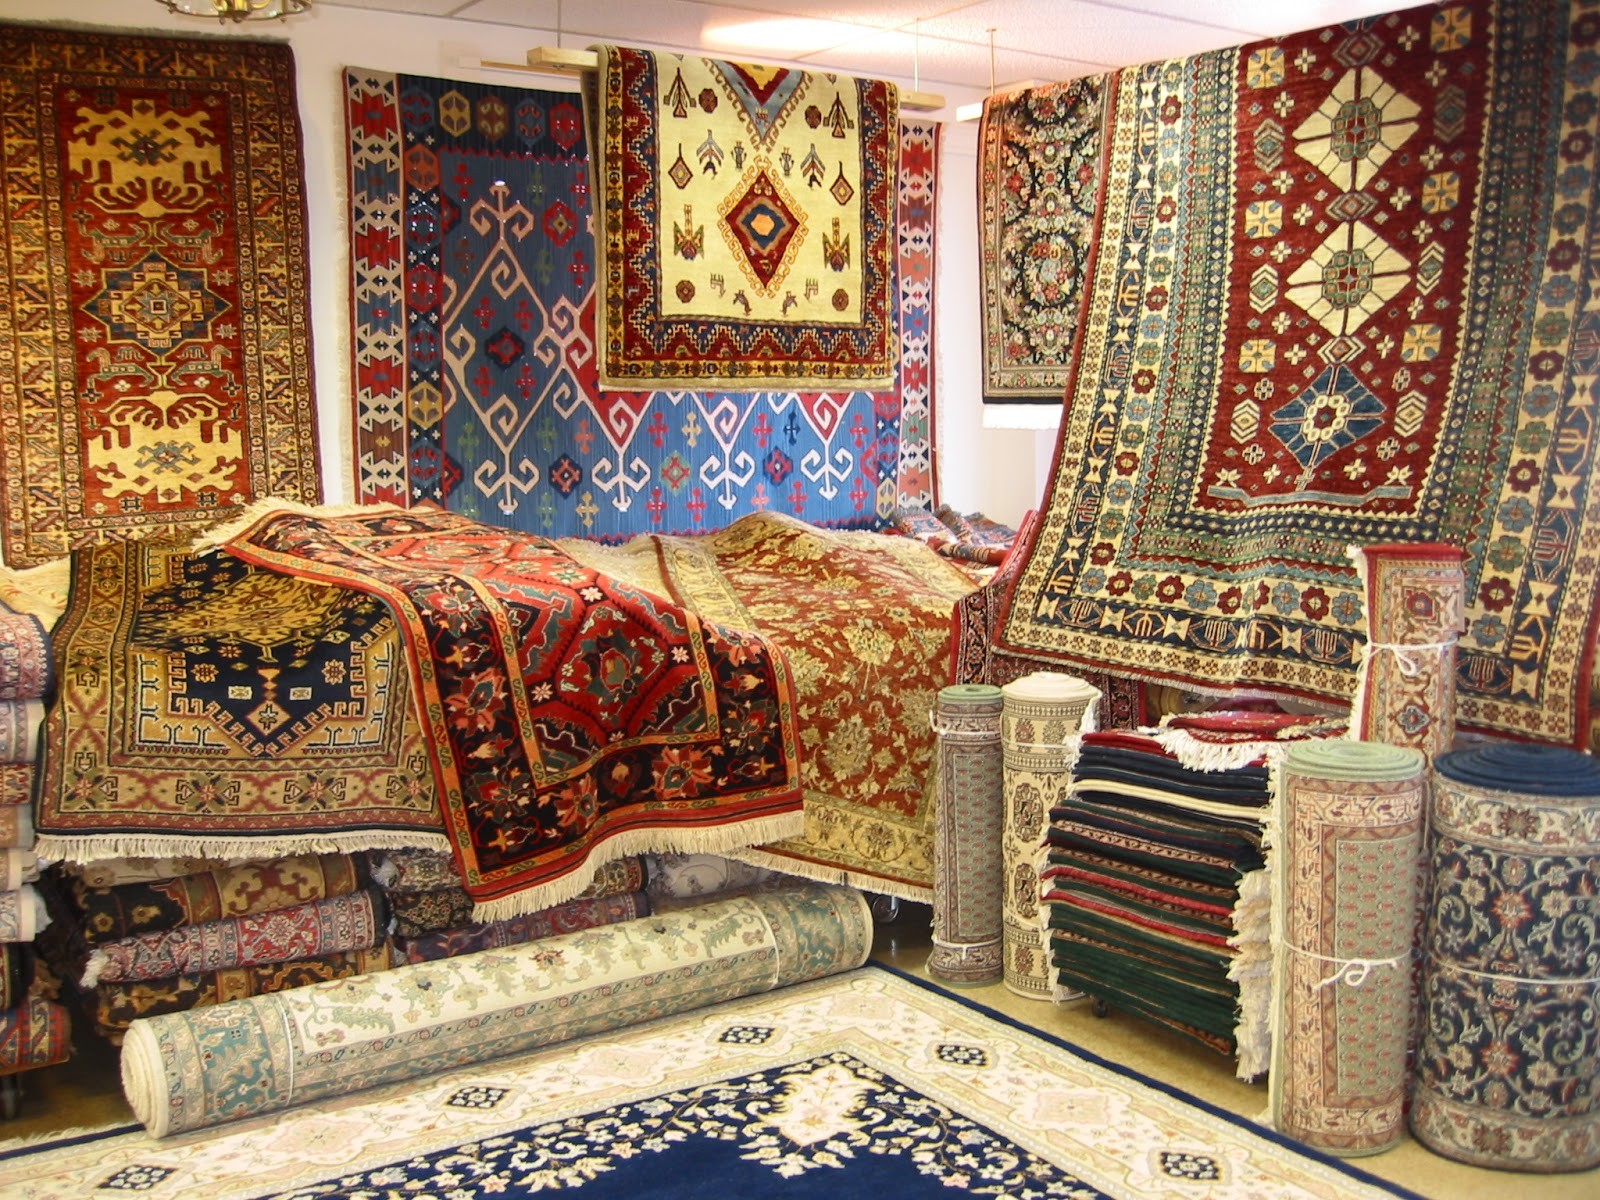 ISA Now Oriental Rugs The Myths the Market and More